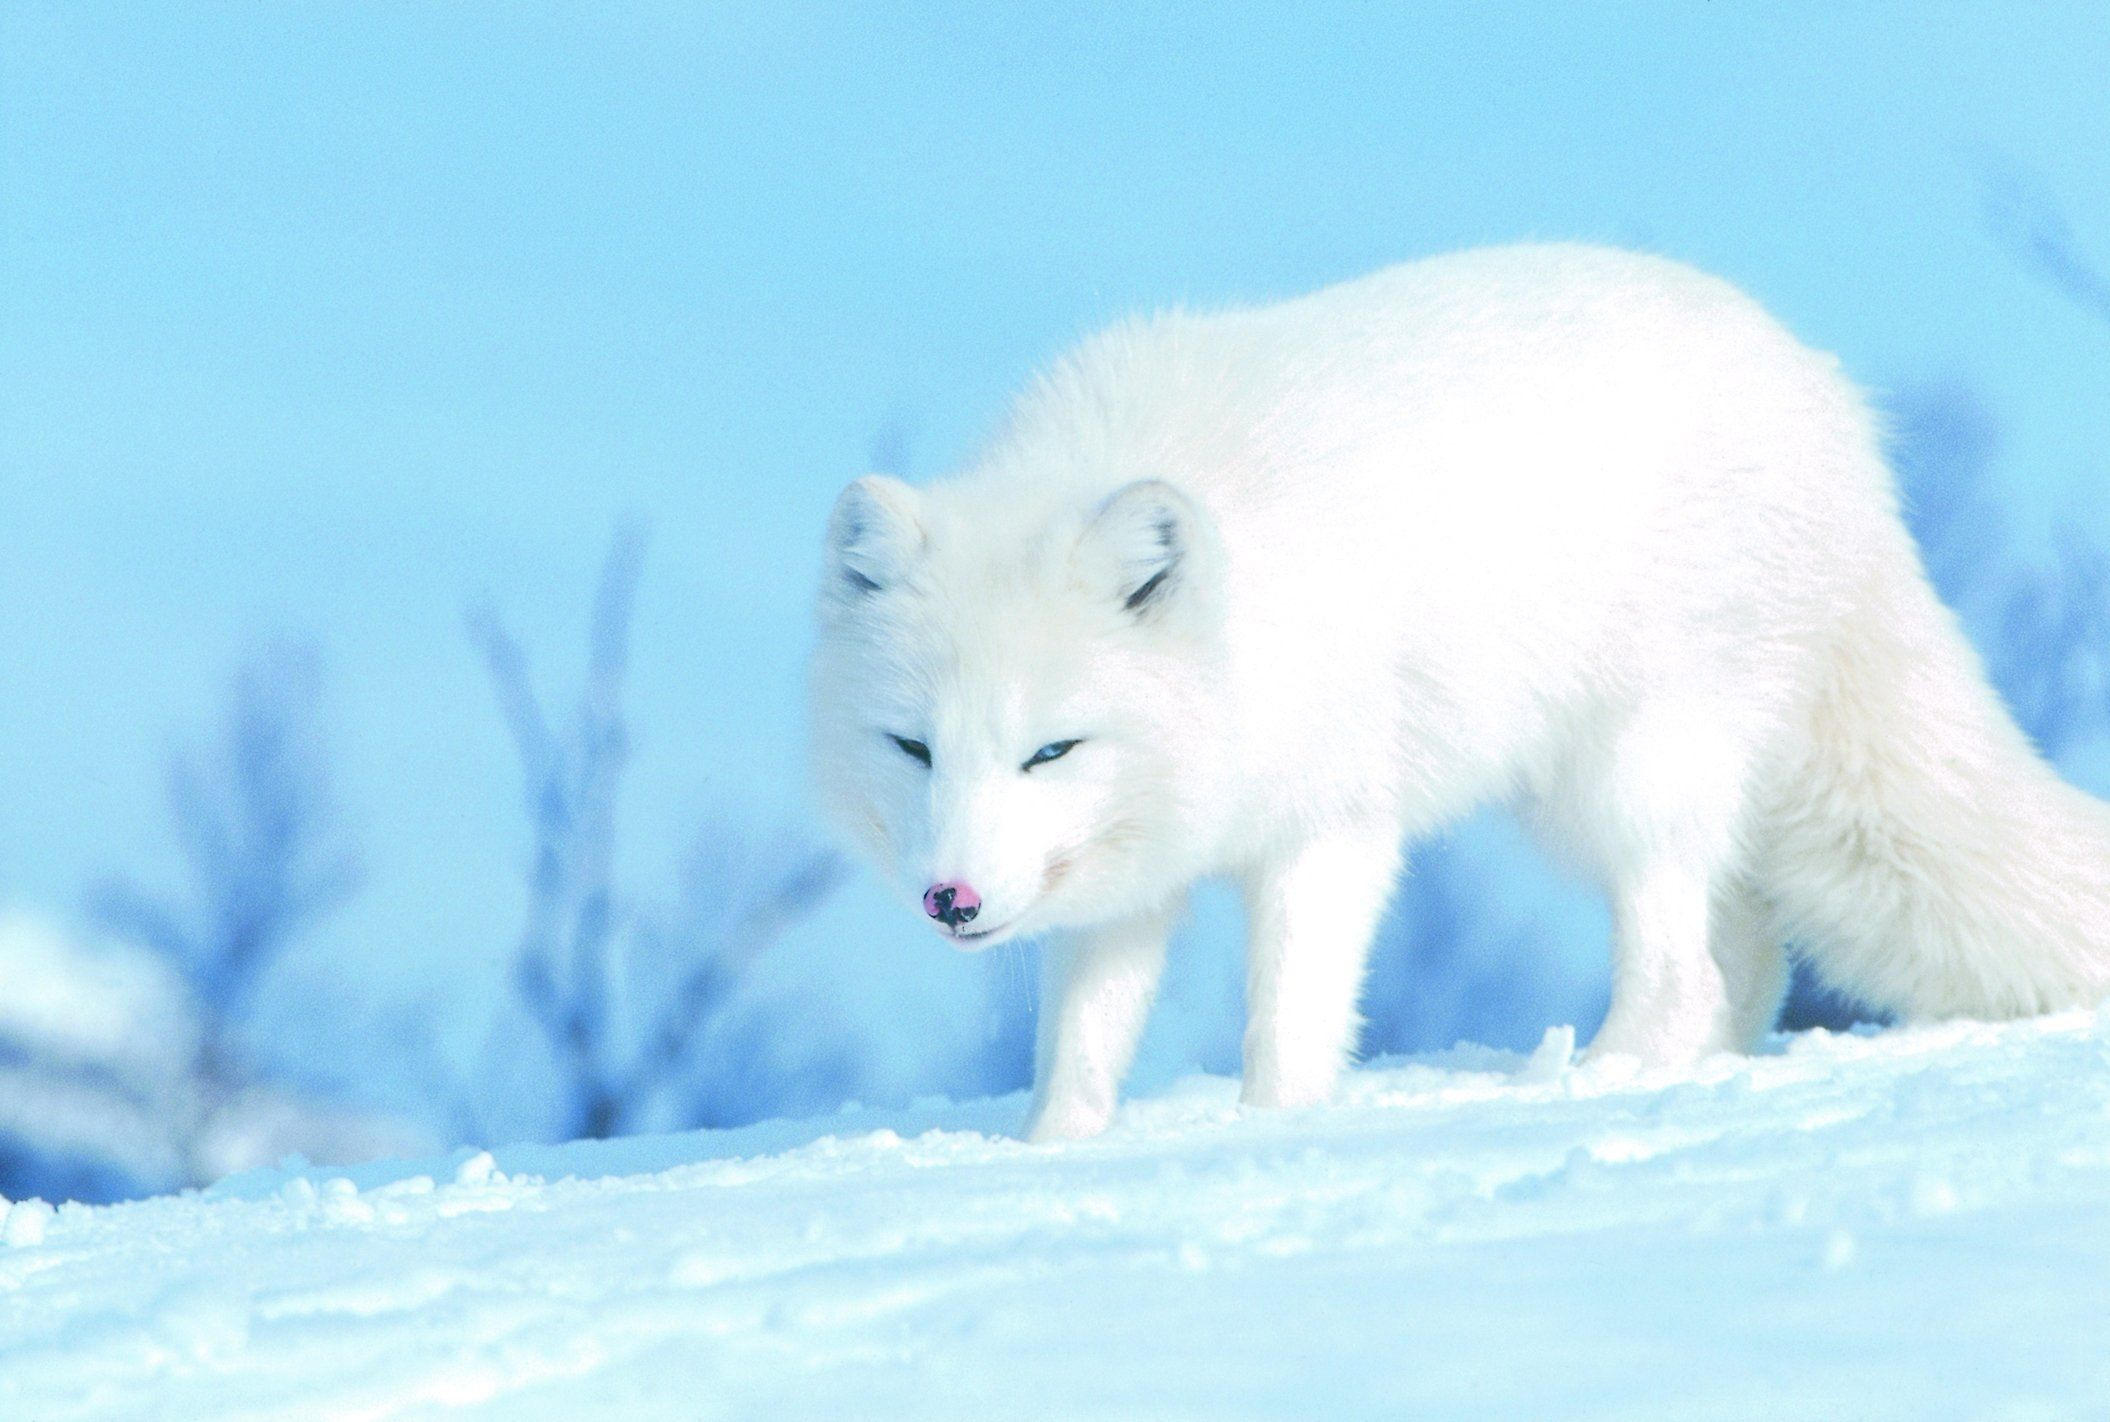 Polar White Fox Wallpaper | 2110x1422 | ID:58494 - WallpaperVortex.com